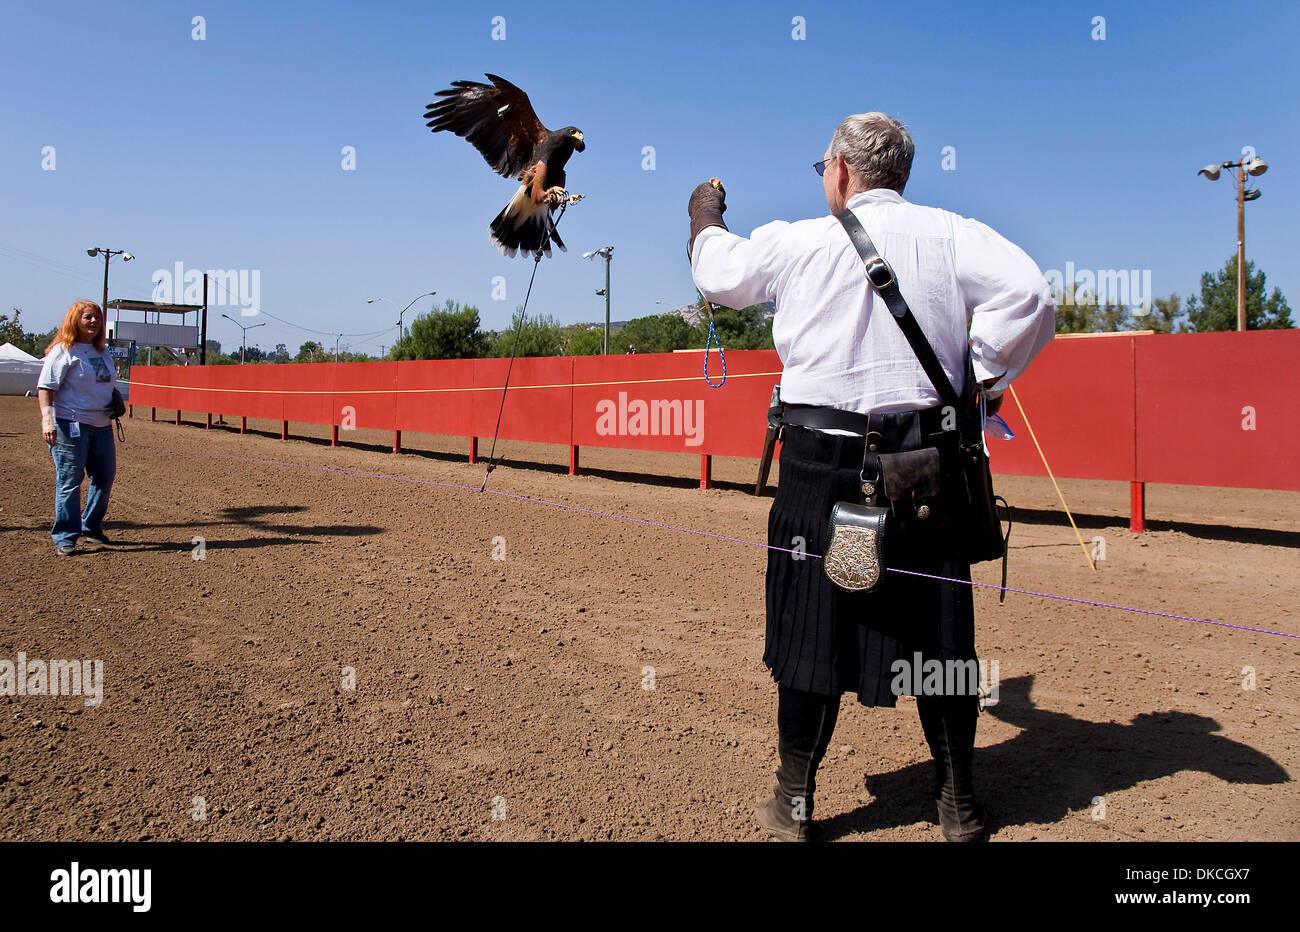 Oct. 21, 2011 - Poway, California, USA -  A falcon flies to the arm of trainer Rick Holderman during a demonstration Stock Photo